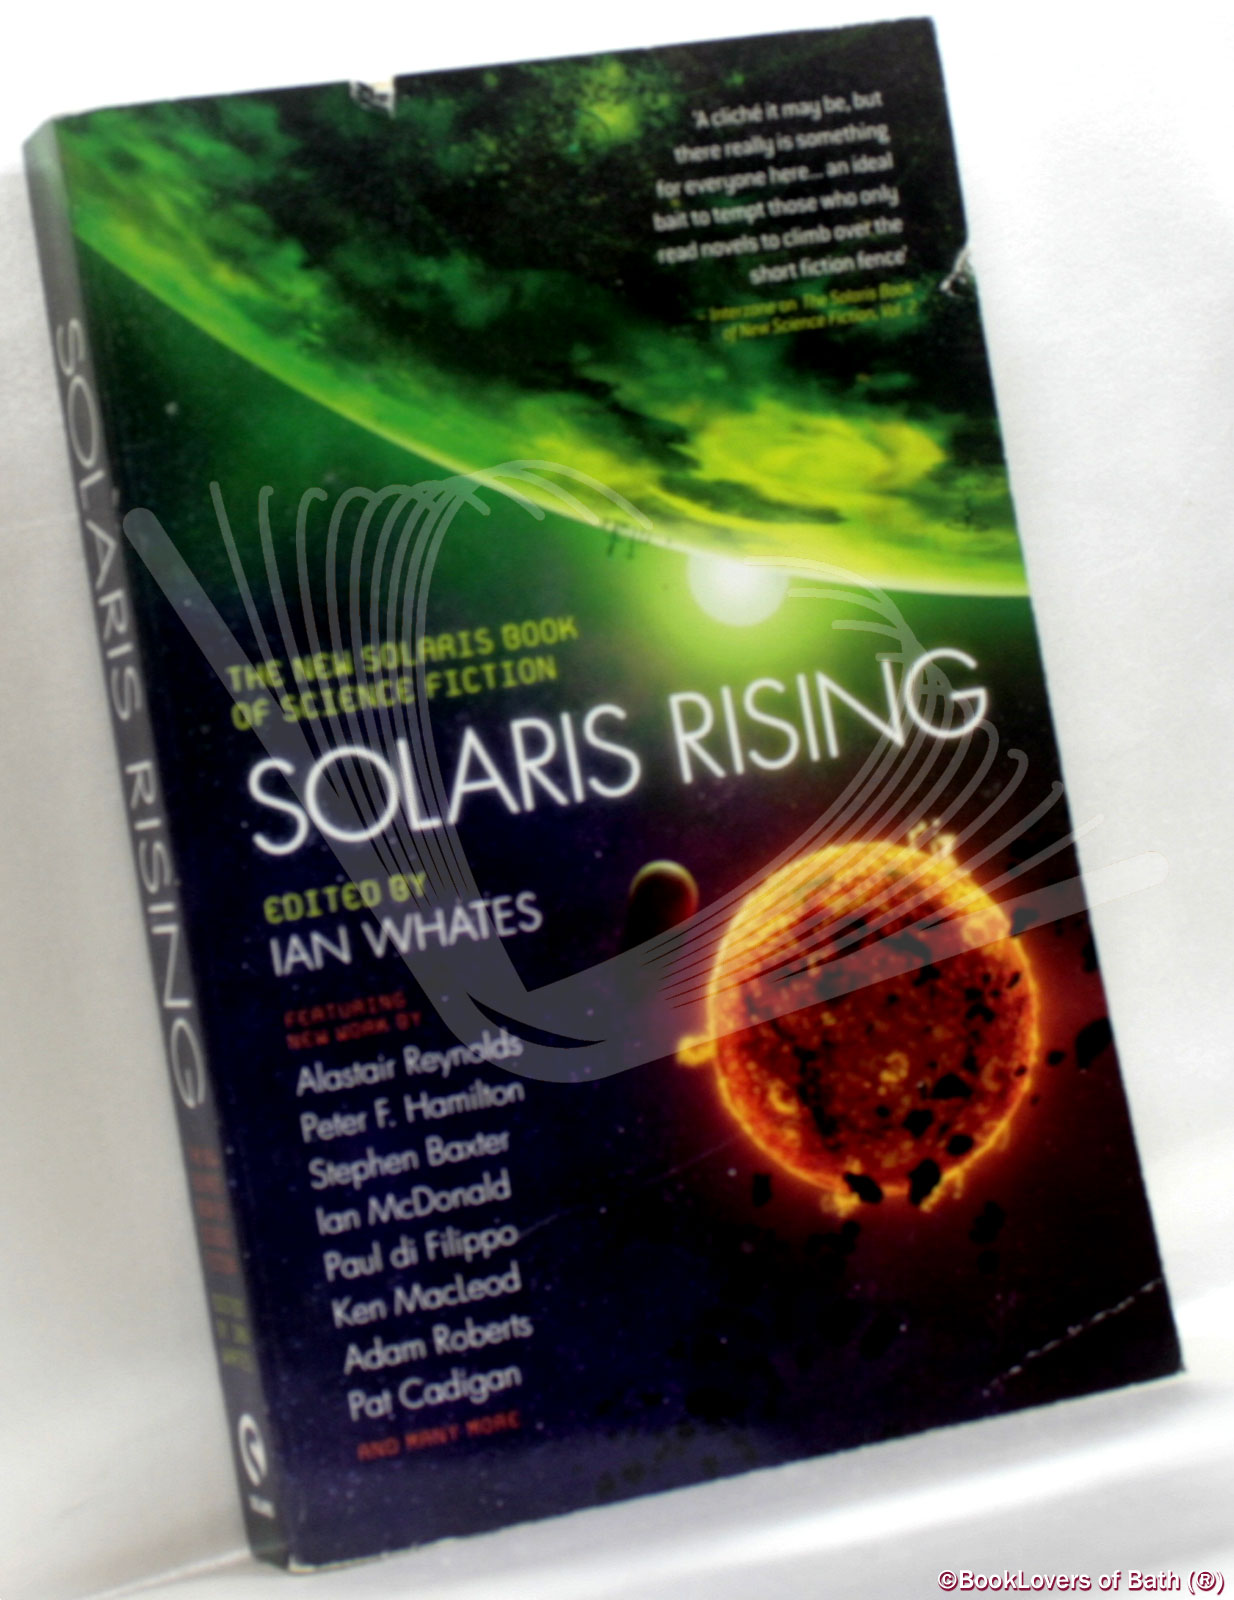 Solaris Rising: The New Solaris Book of Science Fiction - Edited by Ian Whates